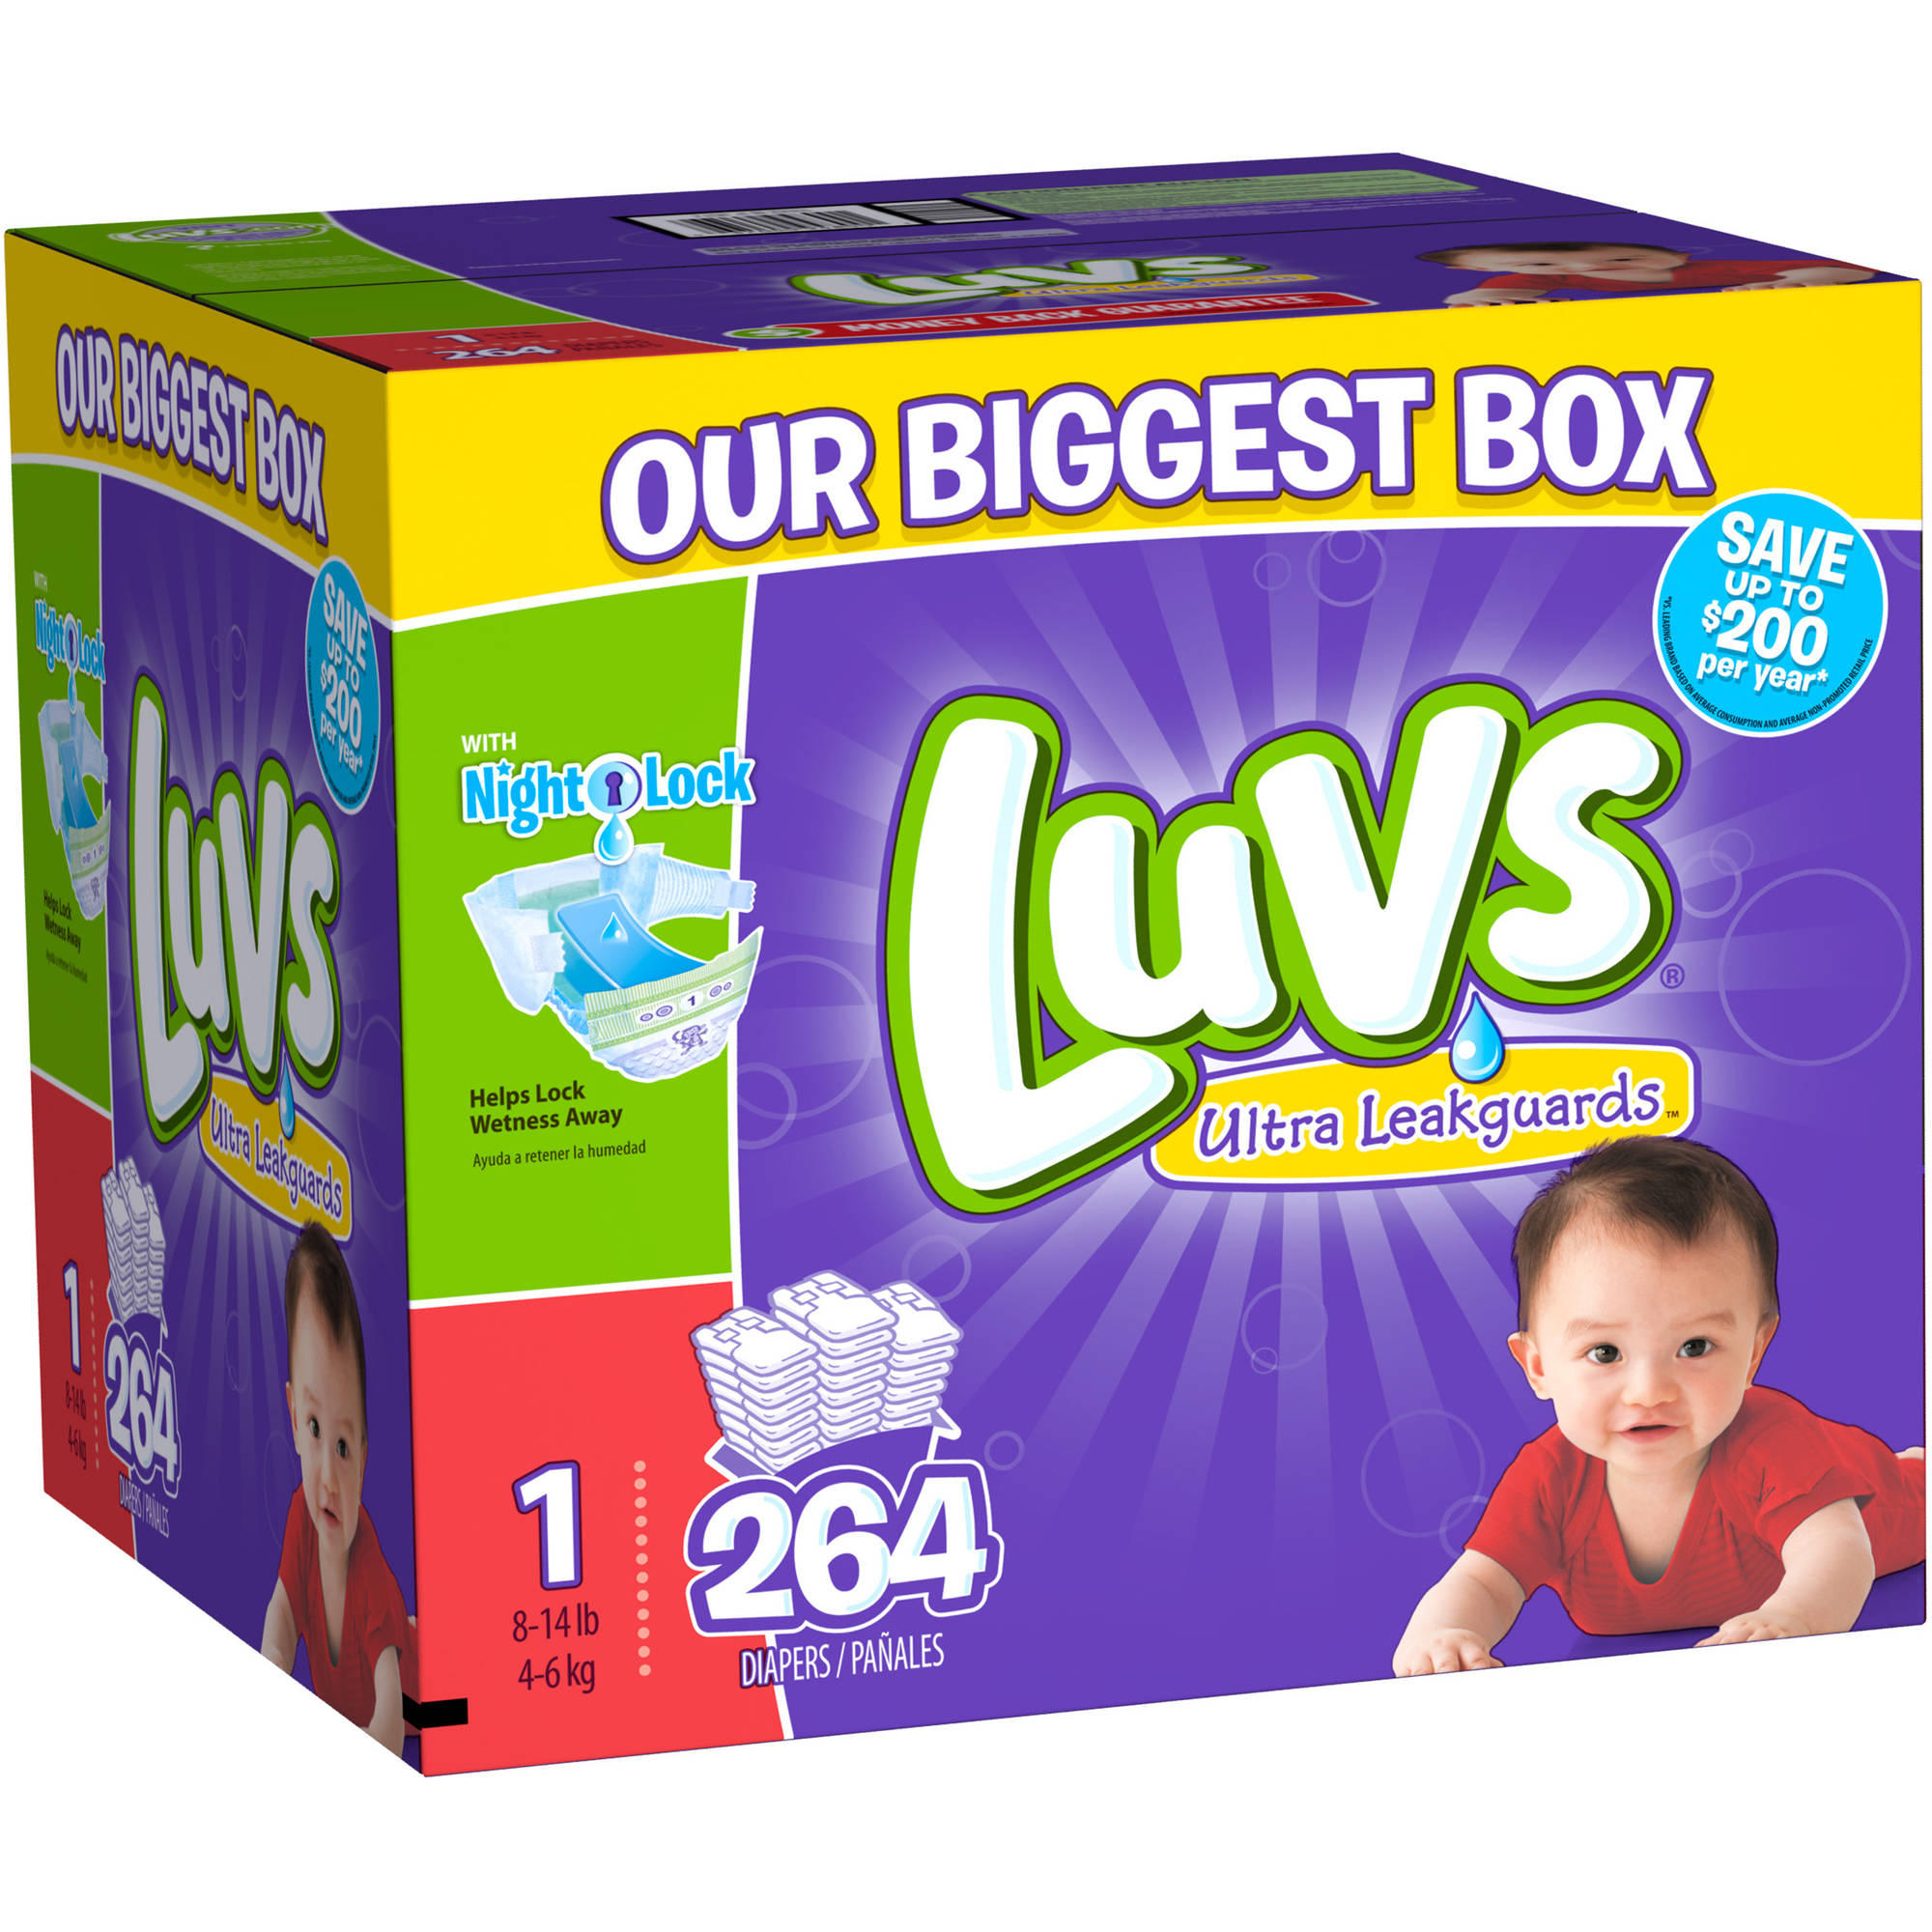 Luvs Ultra Leakguards Diapers, Size 1, 264 Diapers